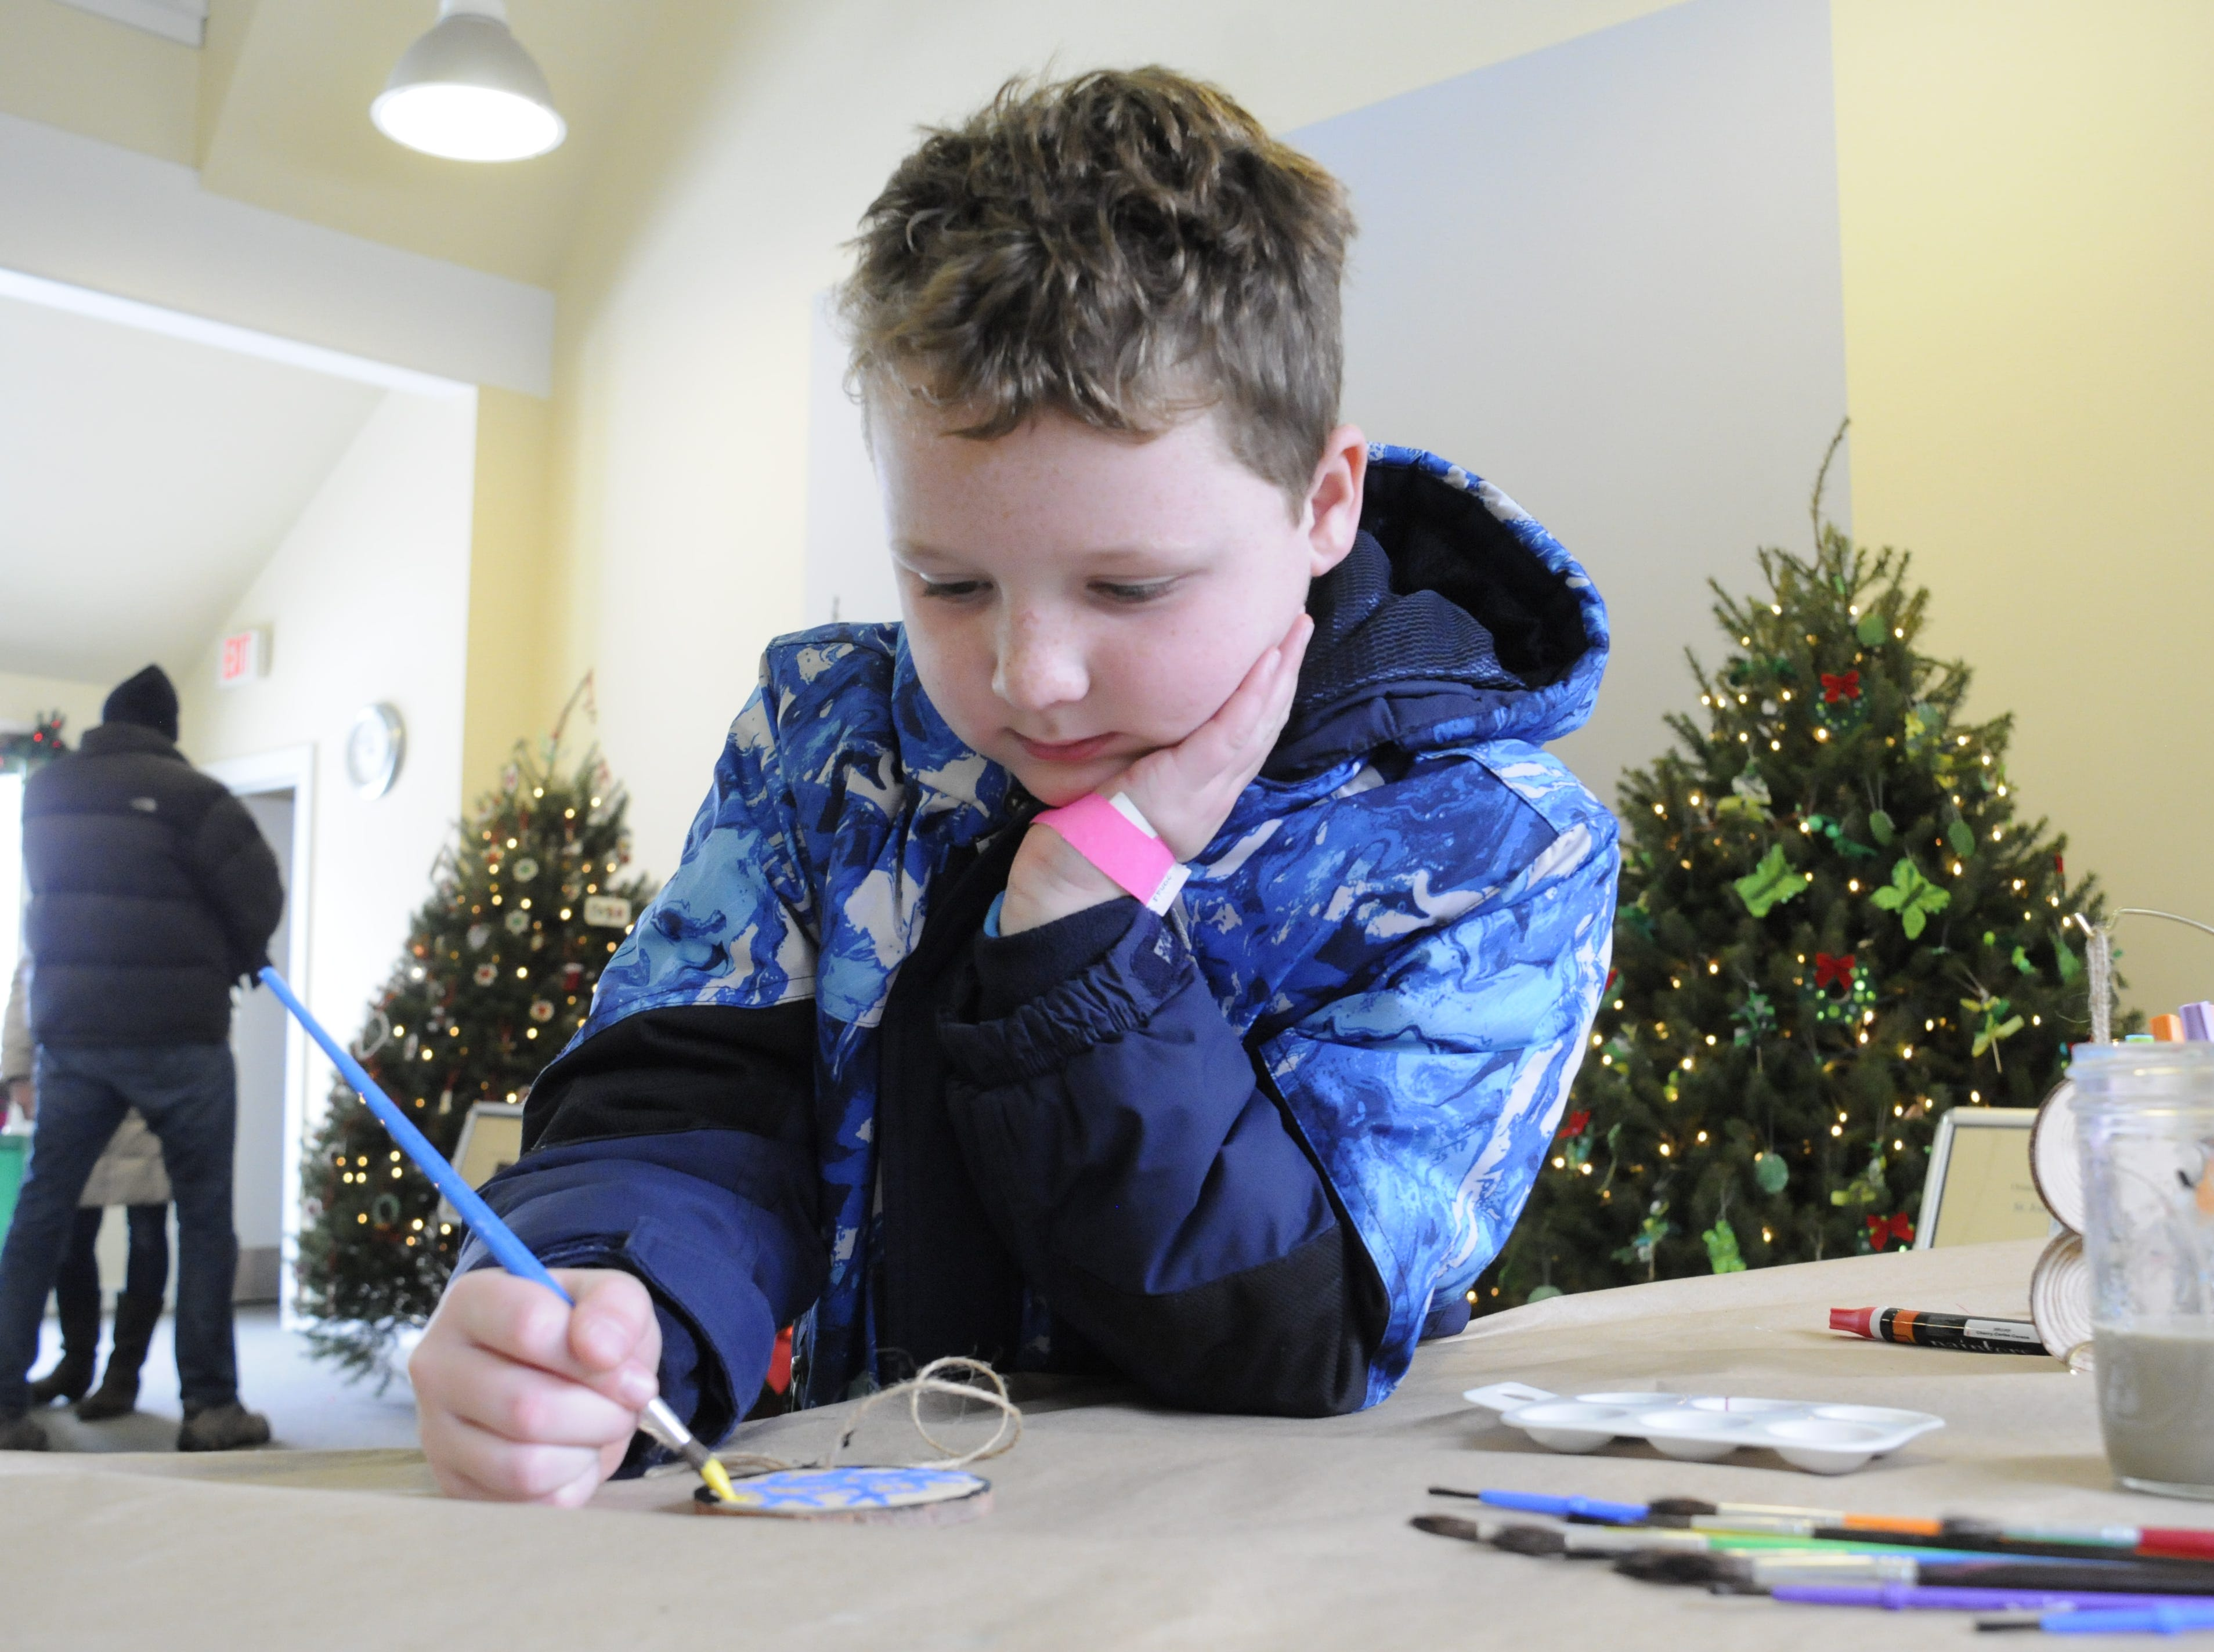 Children can visit the education center to paint their own ornament to take home and also make something for the winter birds in their backyard.